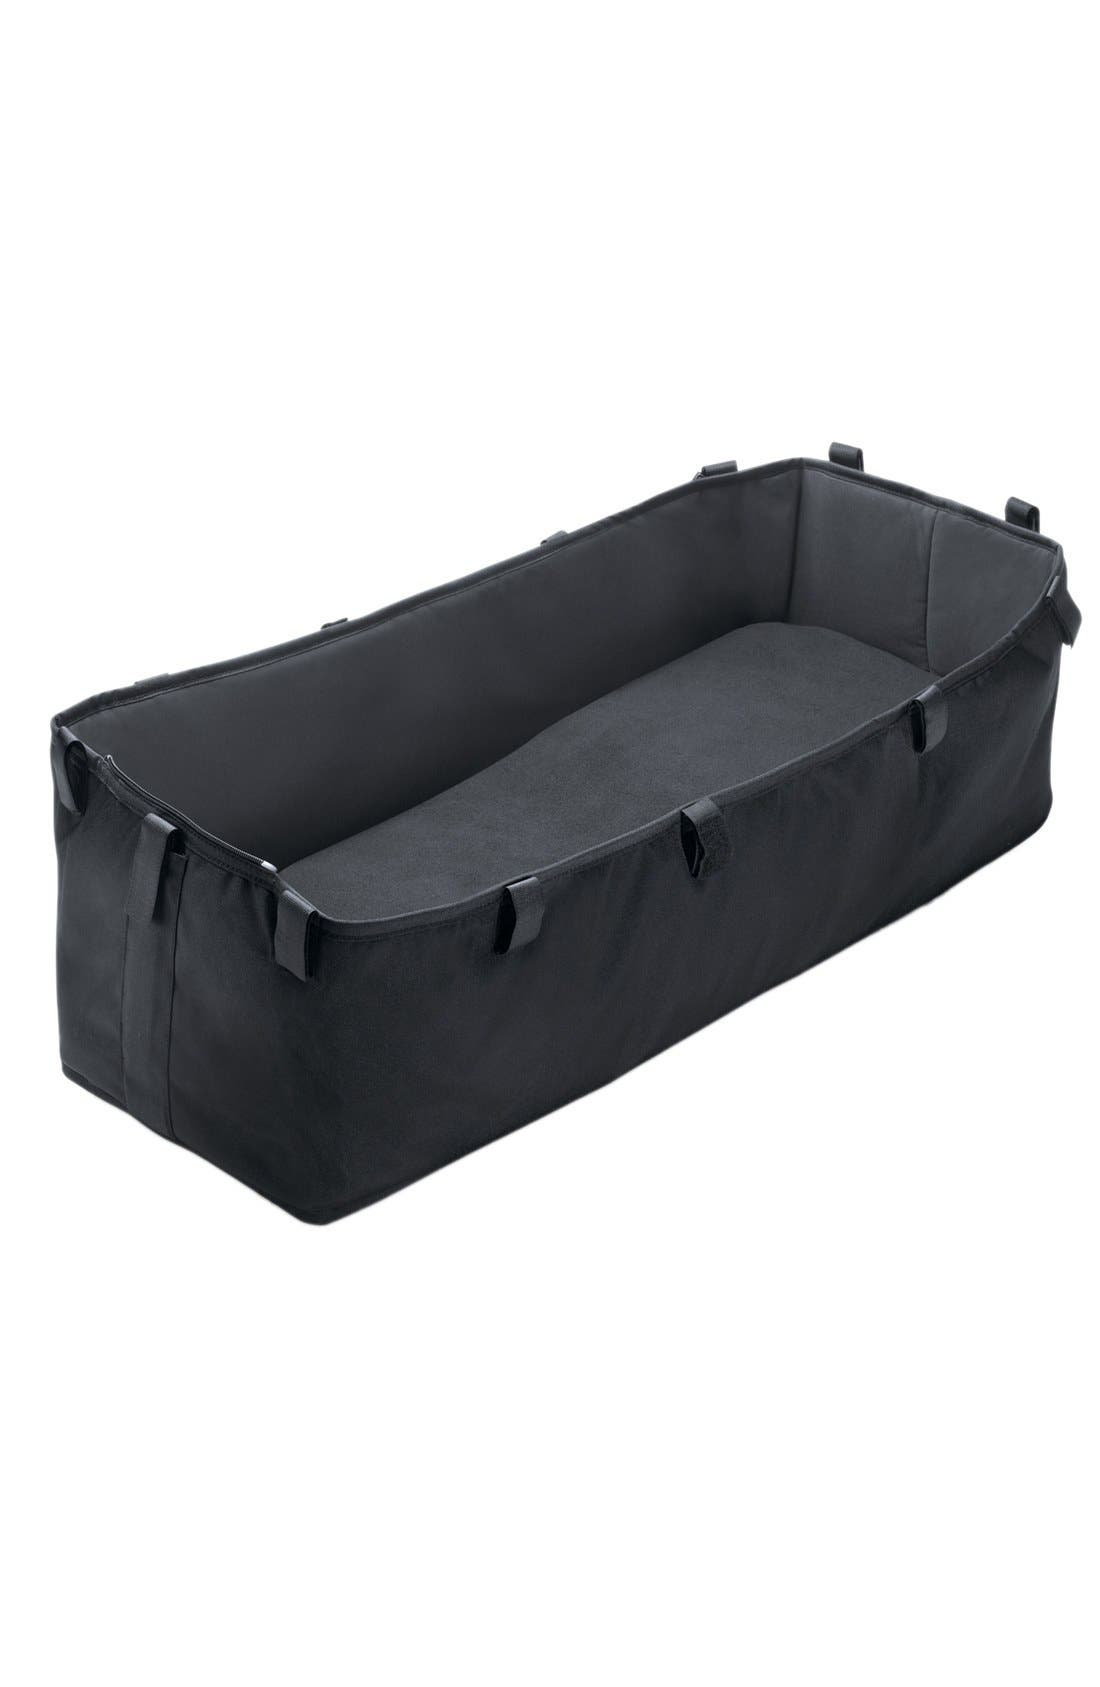 'Donkey' Bassinet Base Complete,                         Main,                         color, Black